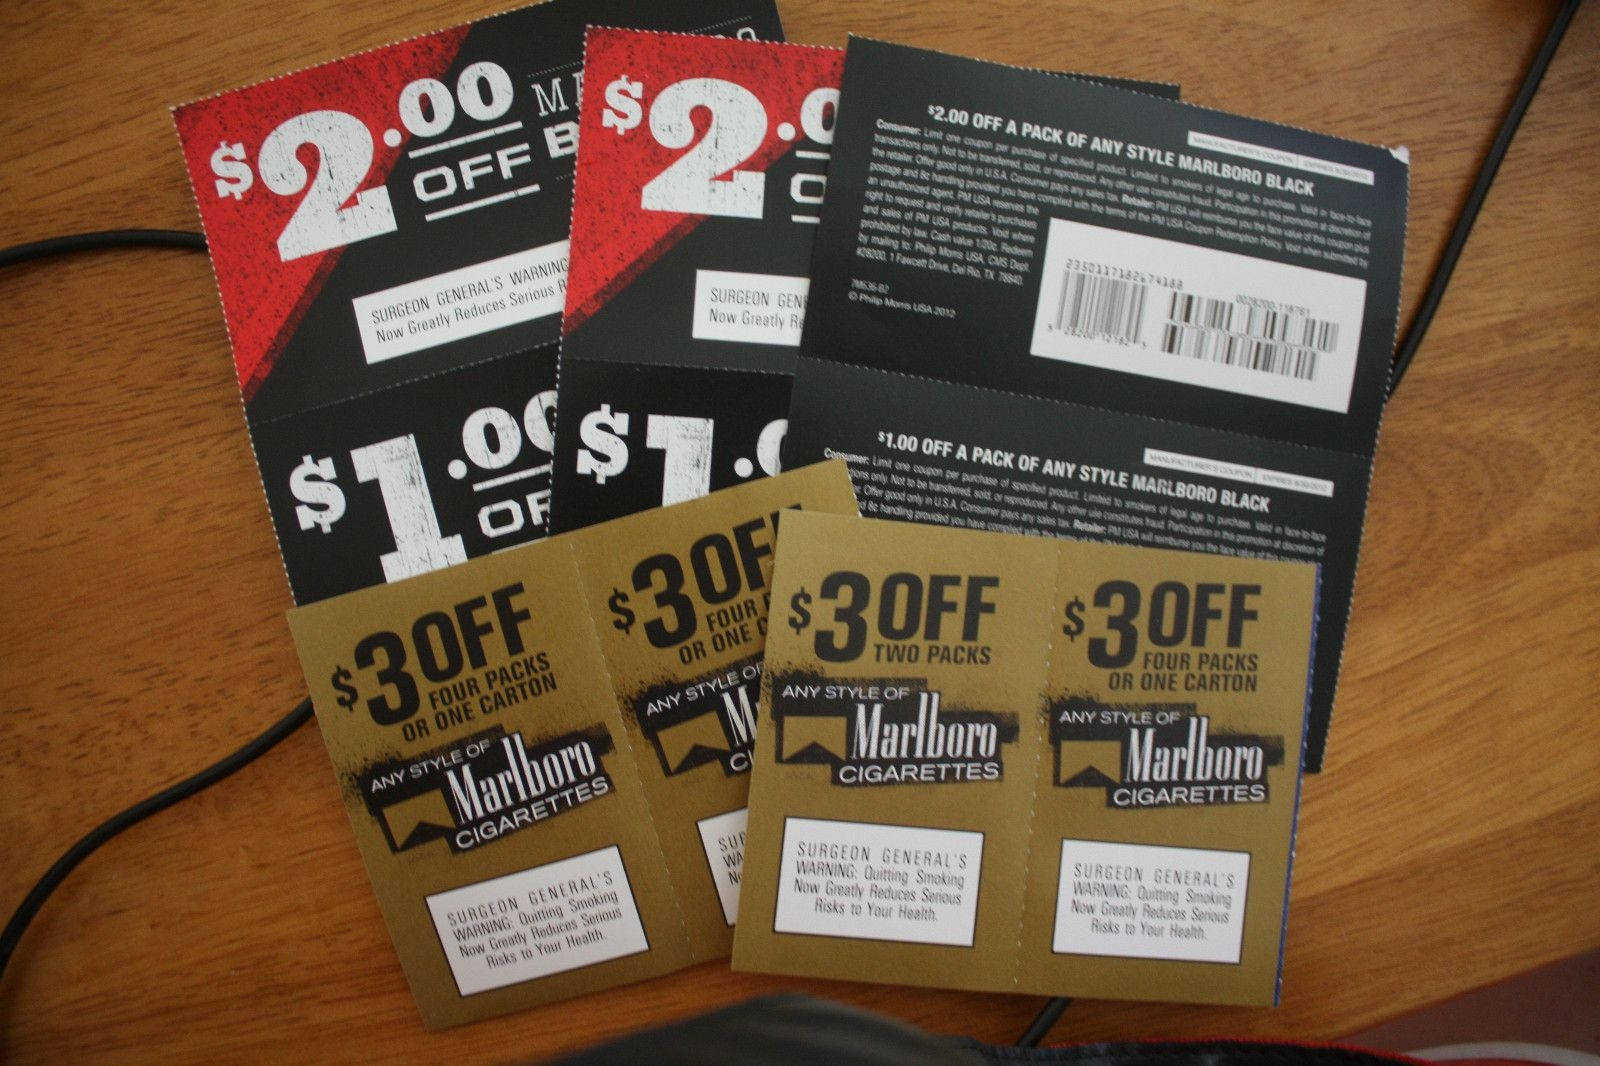 Pindraven Lee On Cigarette Coupons In 2019 | Cigarette Coupons - Free Printable Cigarette Coupons